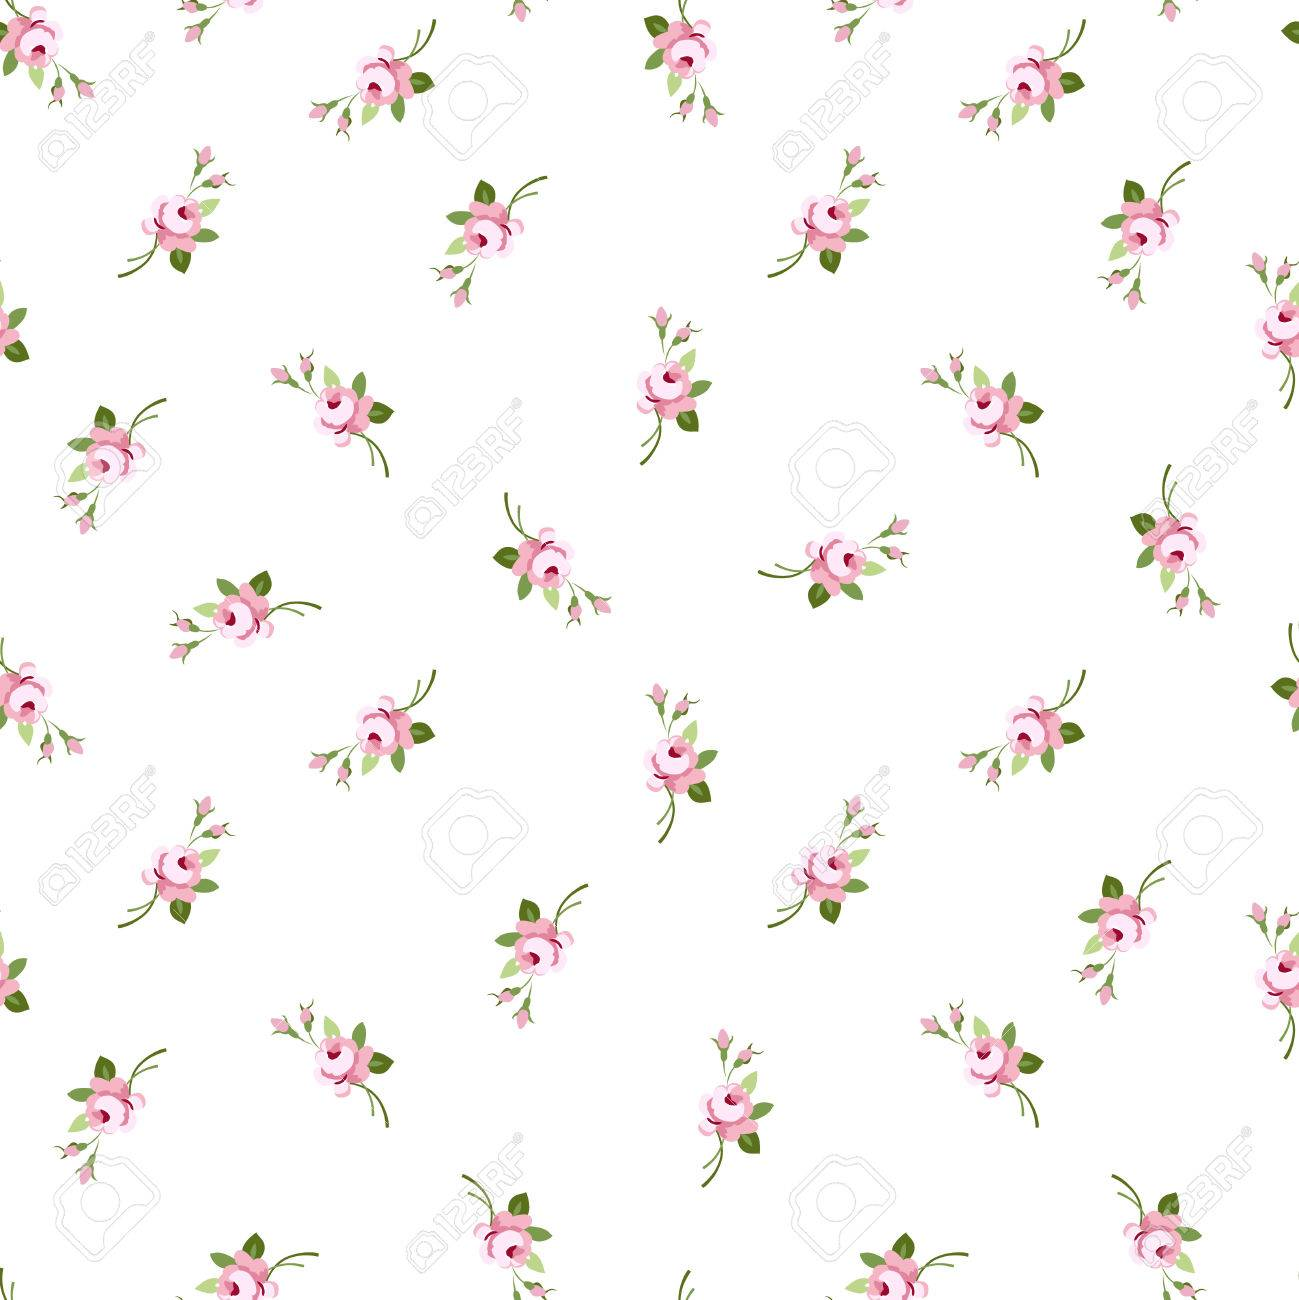 Seamless floral pattern with little flowers pink roses, vector floral illustration in vintage style. - 50617138